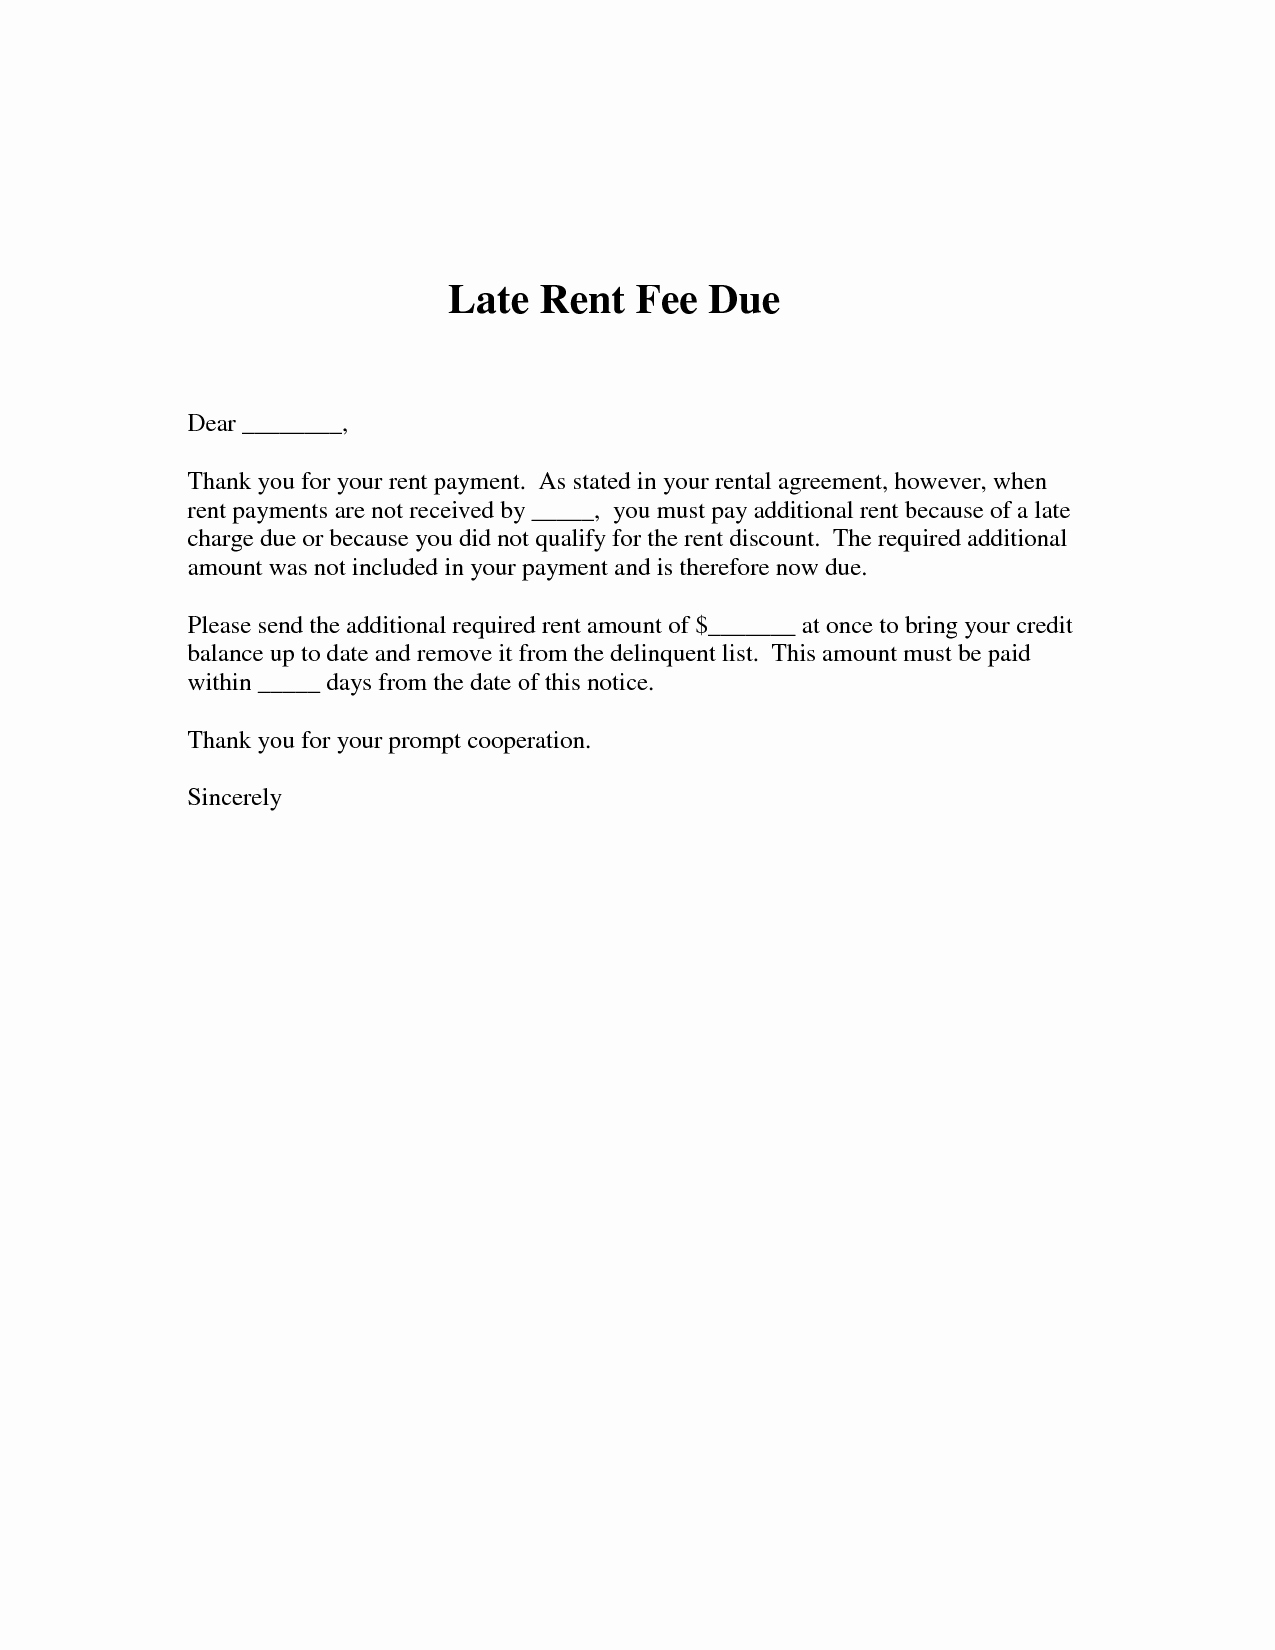 Late Payment Notice Template Elegant Best S Of Rent Reminder Template Rent Reminder